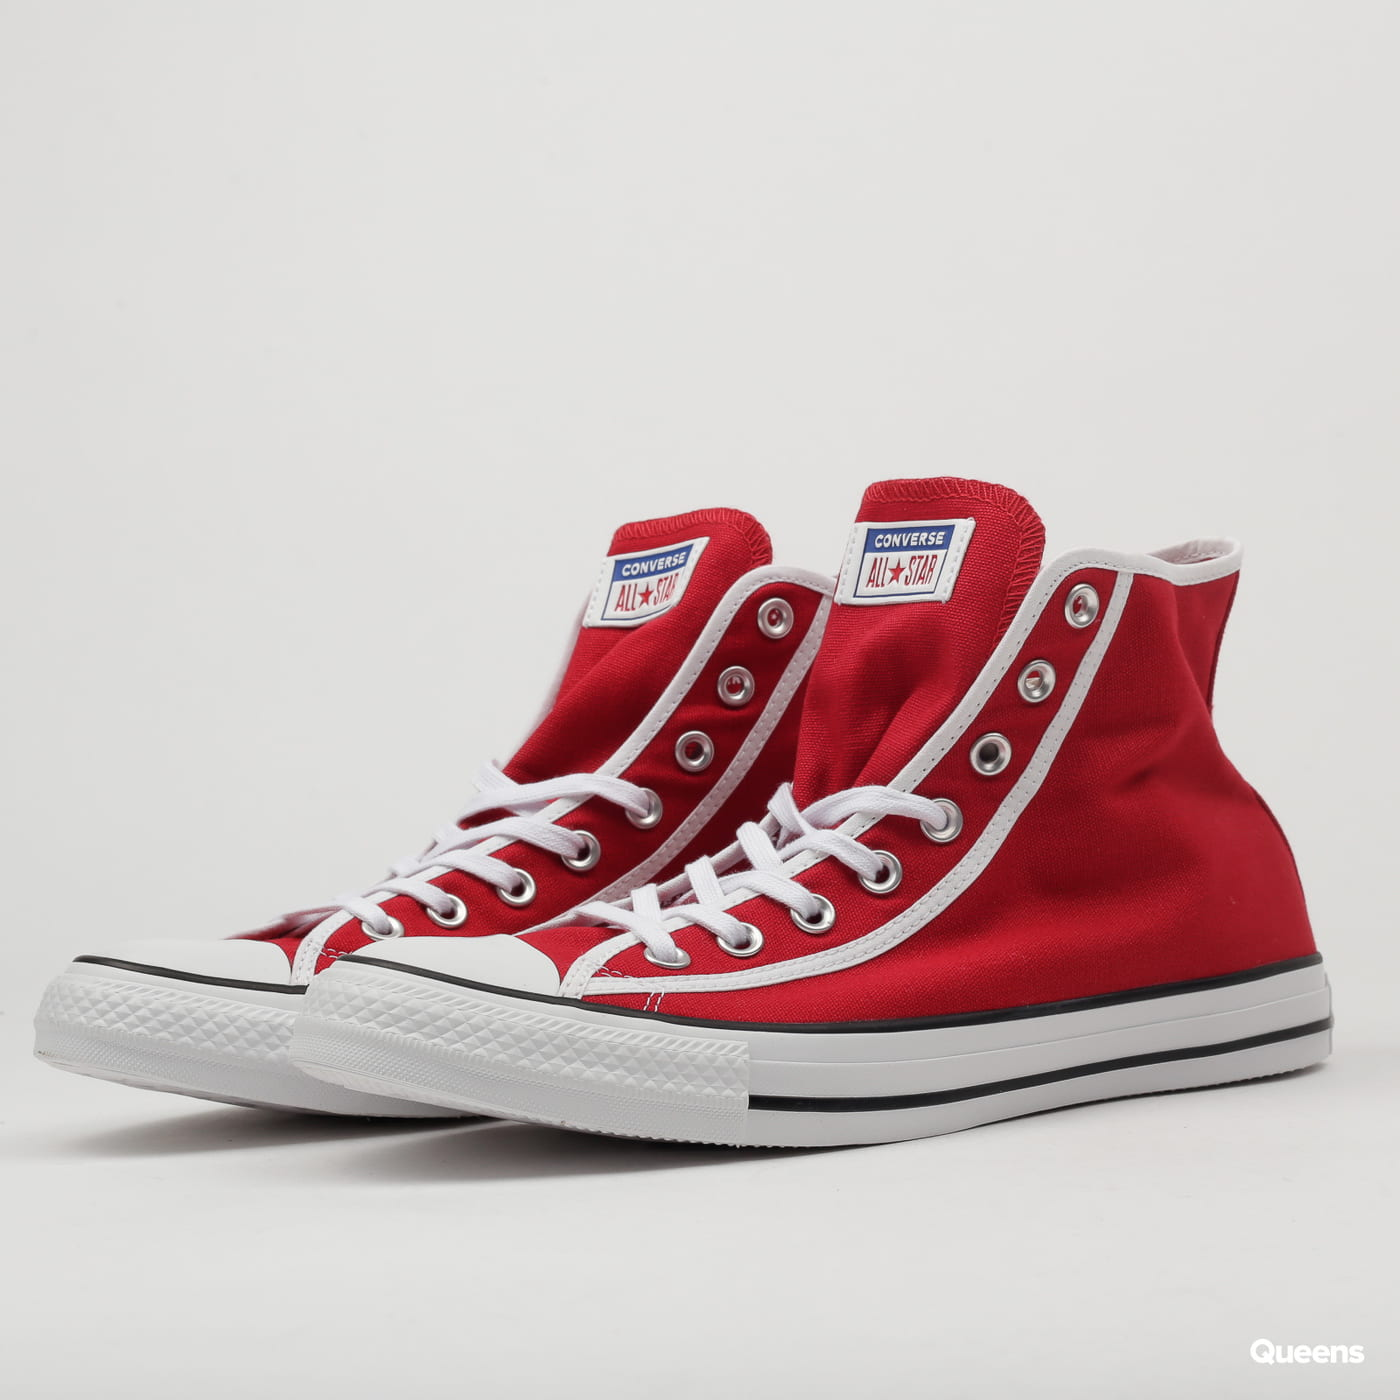 df78ce2db Boty Converse Chuck Taylor All Star Hi (C163980) – Queens 💚